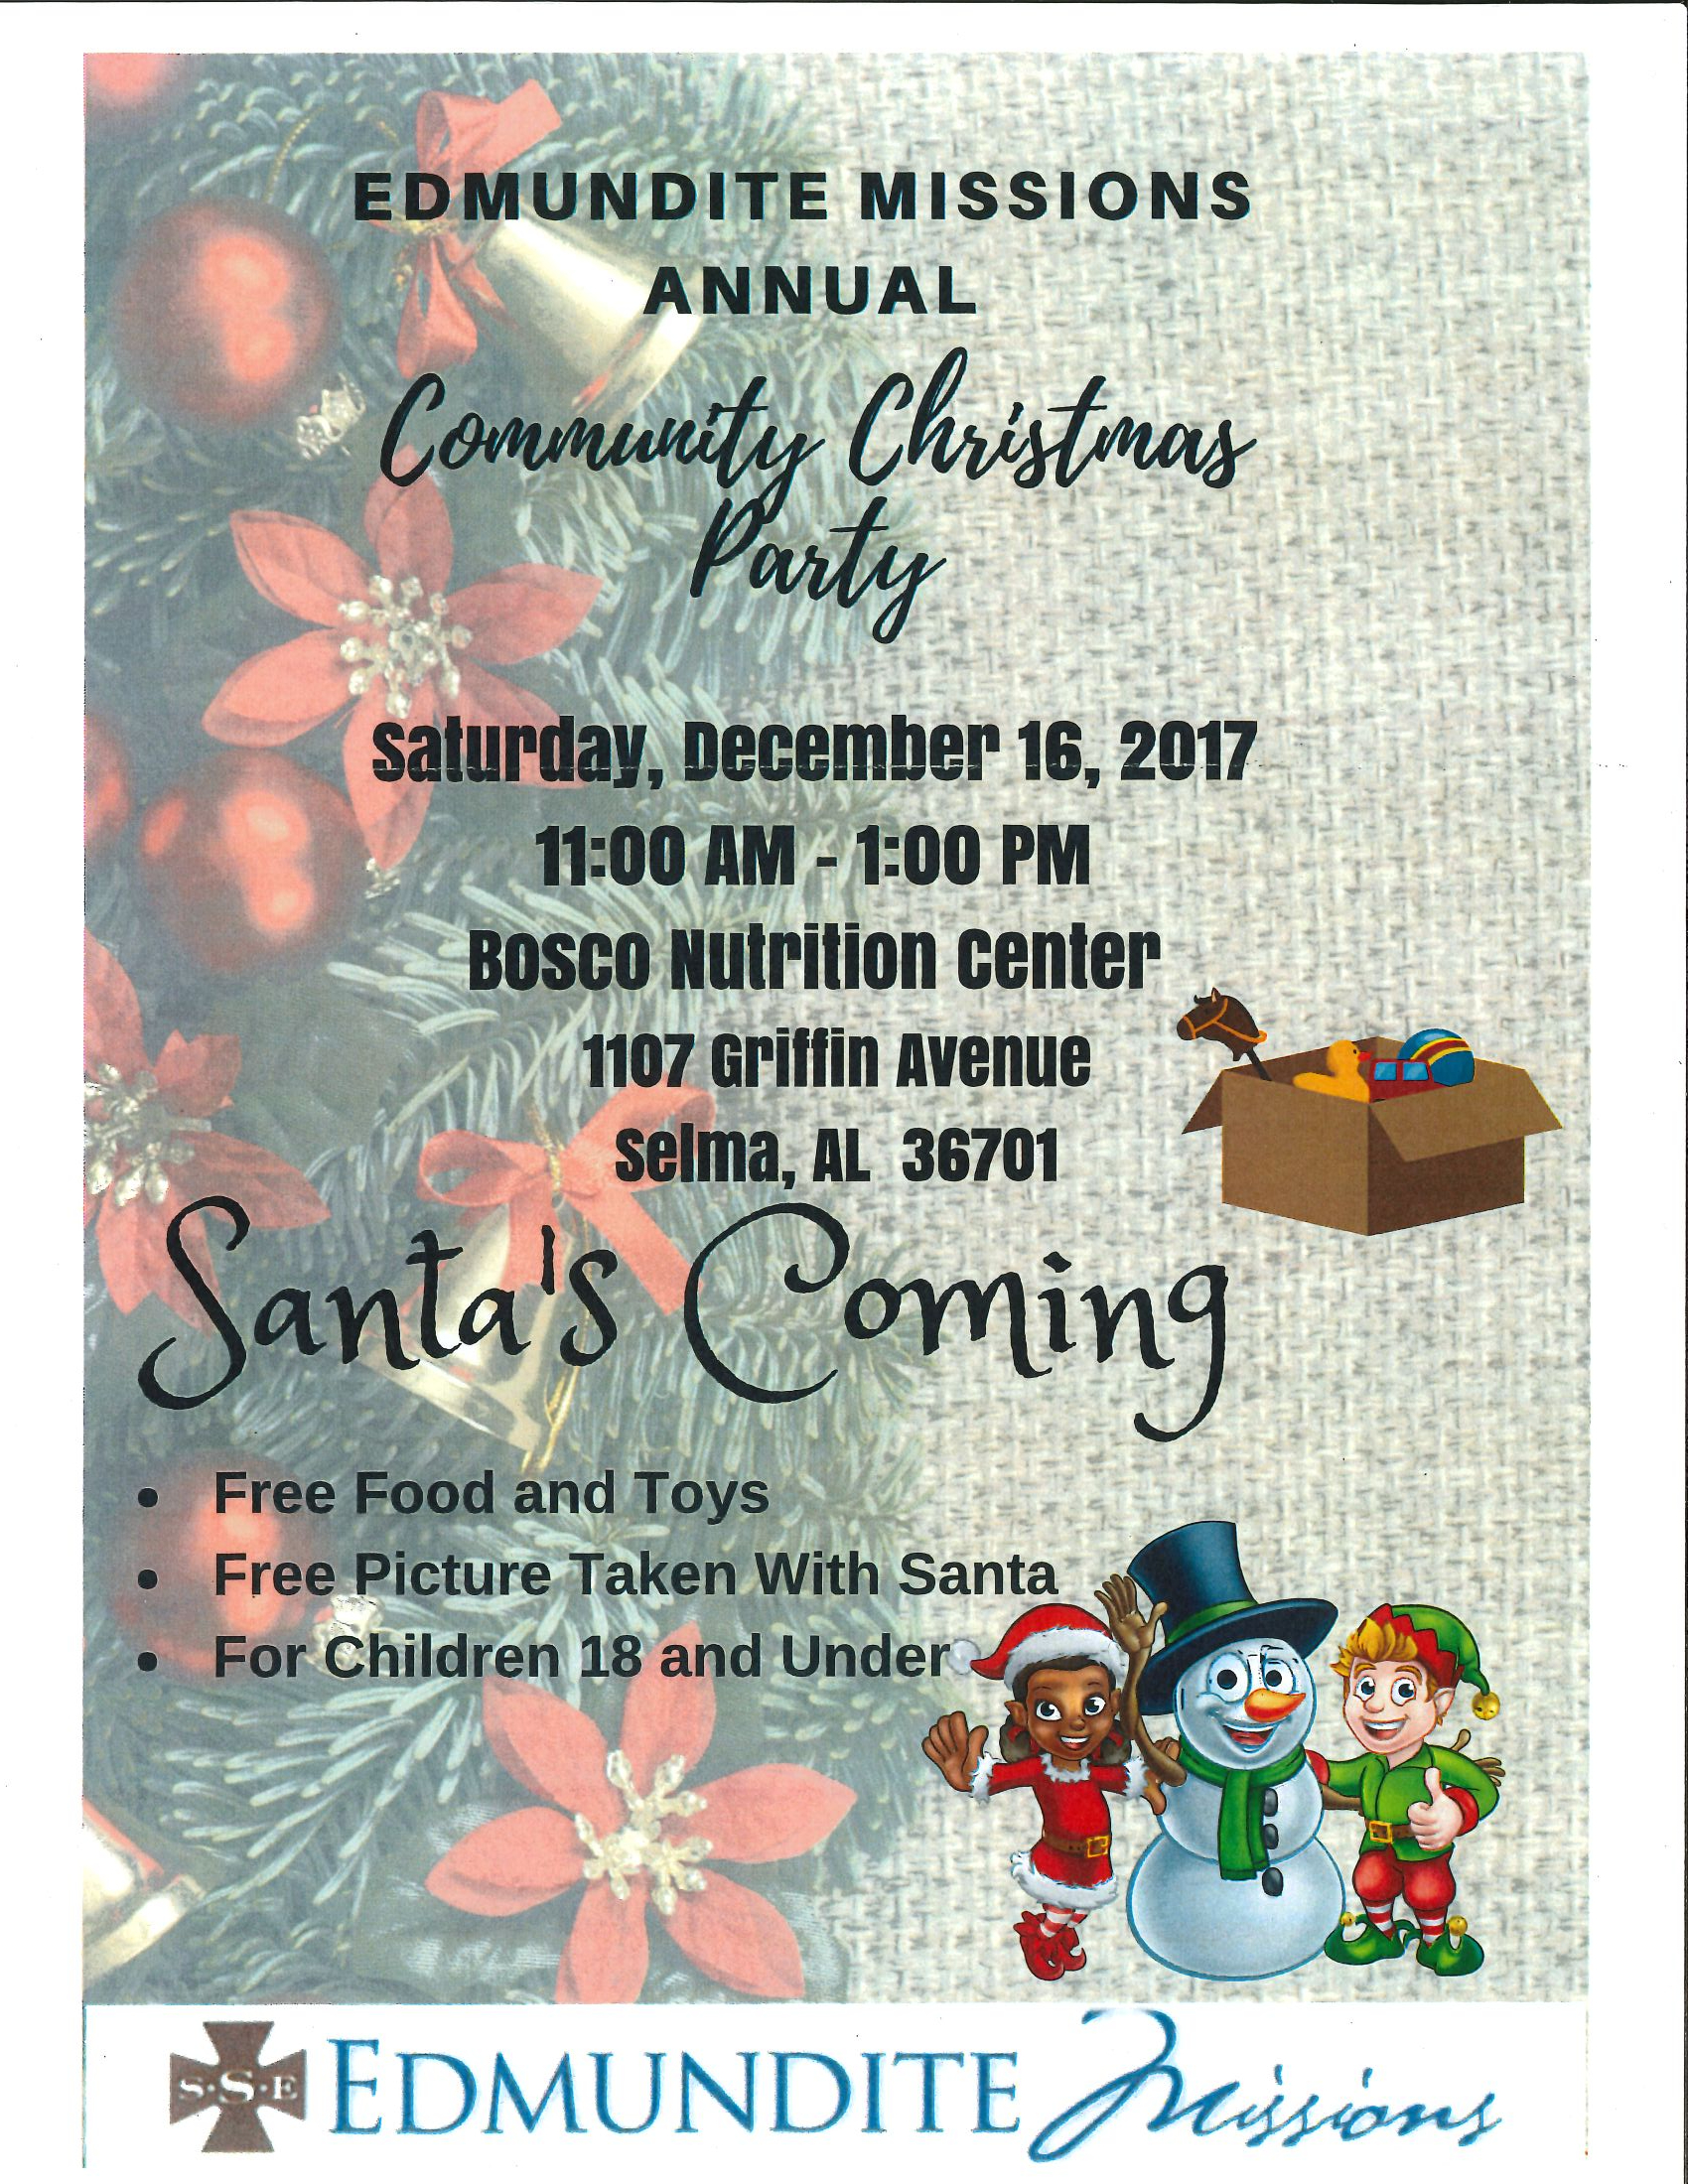 Edmundite Mission Annual Community Christmas Party